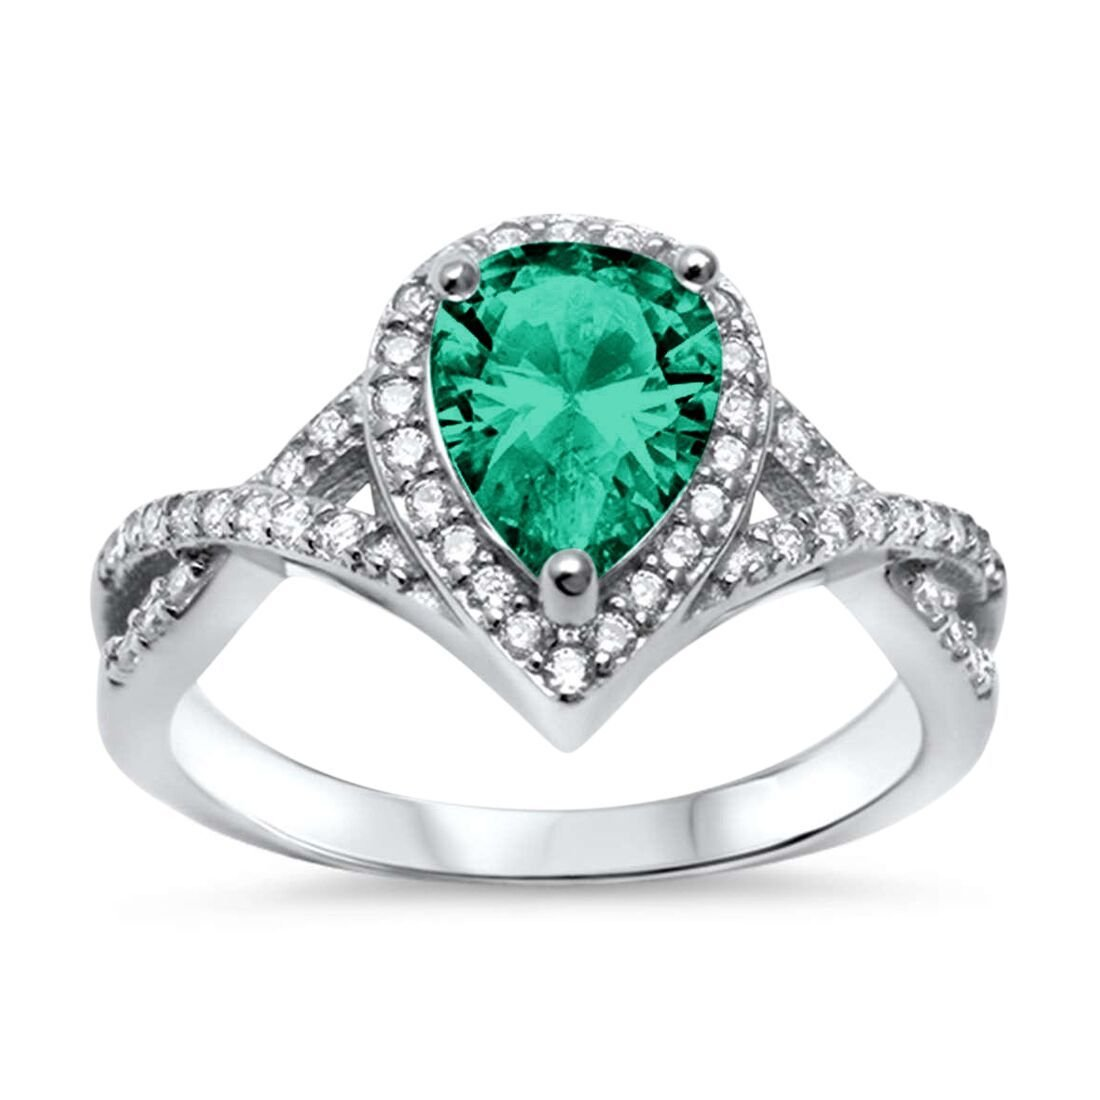 Blue Apple Co. Halo Teardrop Wedding Promise Ring Infinity Accent Simulated Green Emerald CZ Round CZ 925 Sterling Silver, Size-7